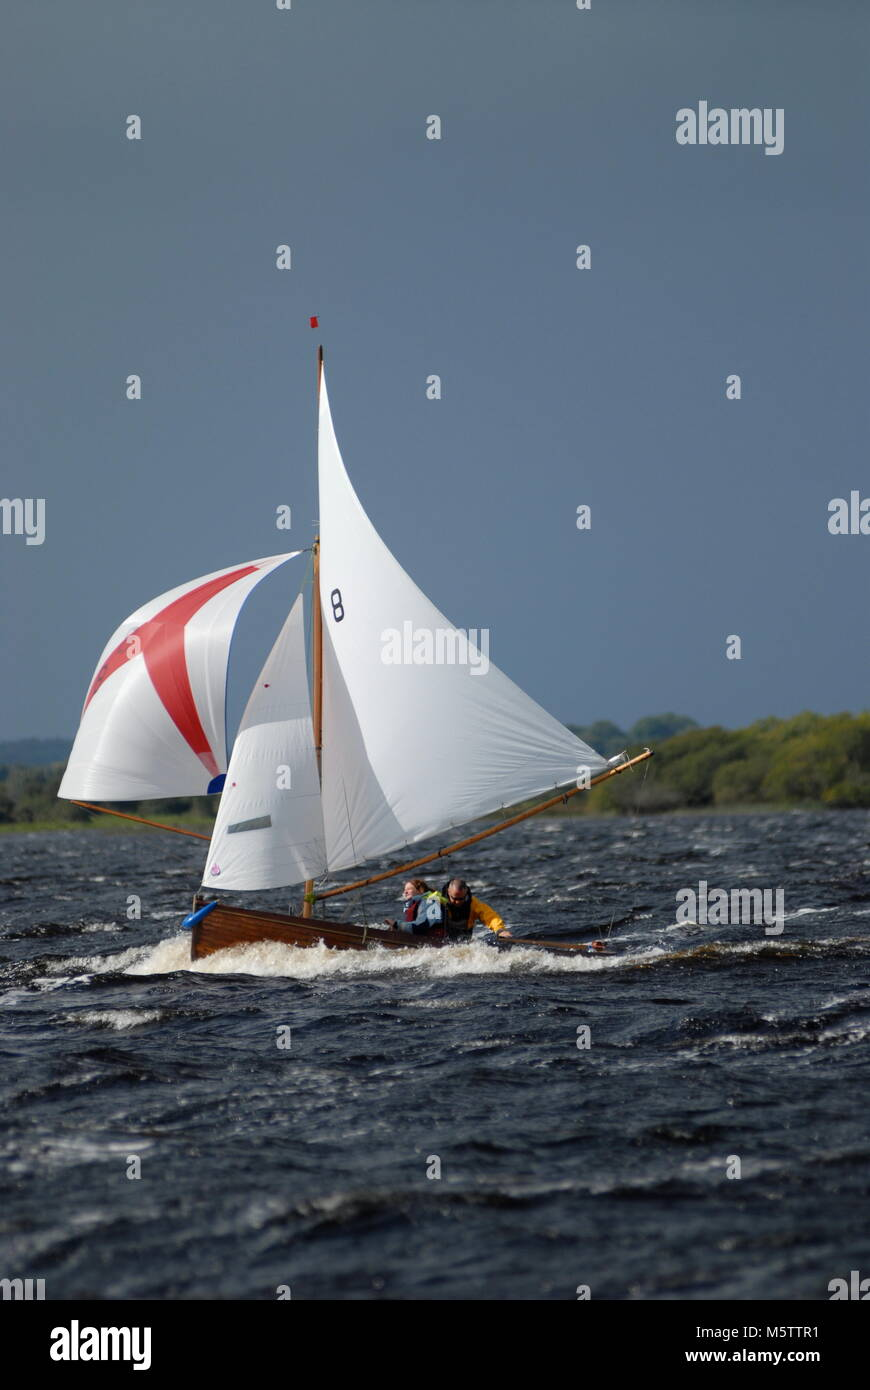 A traditional Water Wag dinghy races down Lough Ree during the Irish sailing raid on the Shannon River in Ireland. Stock Photo